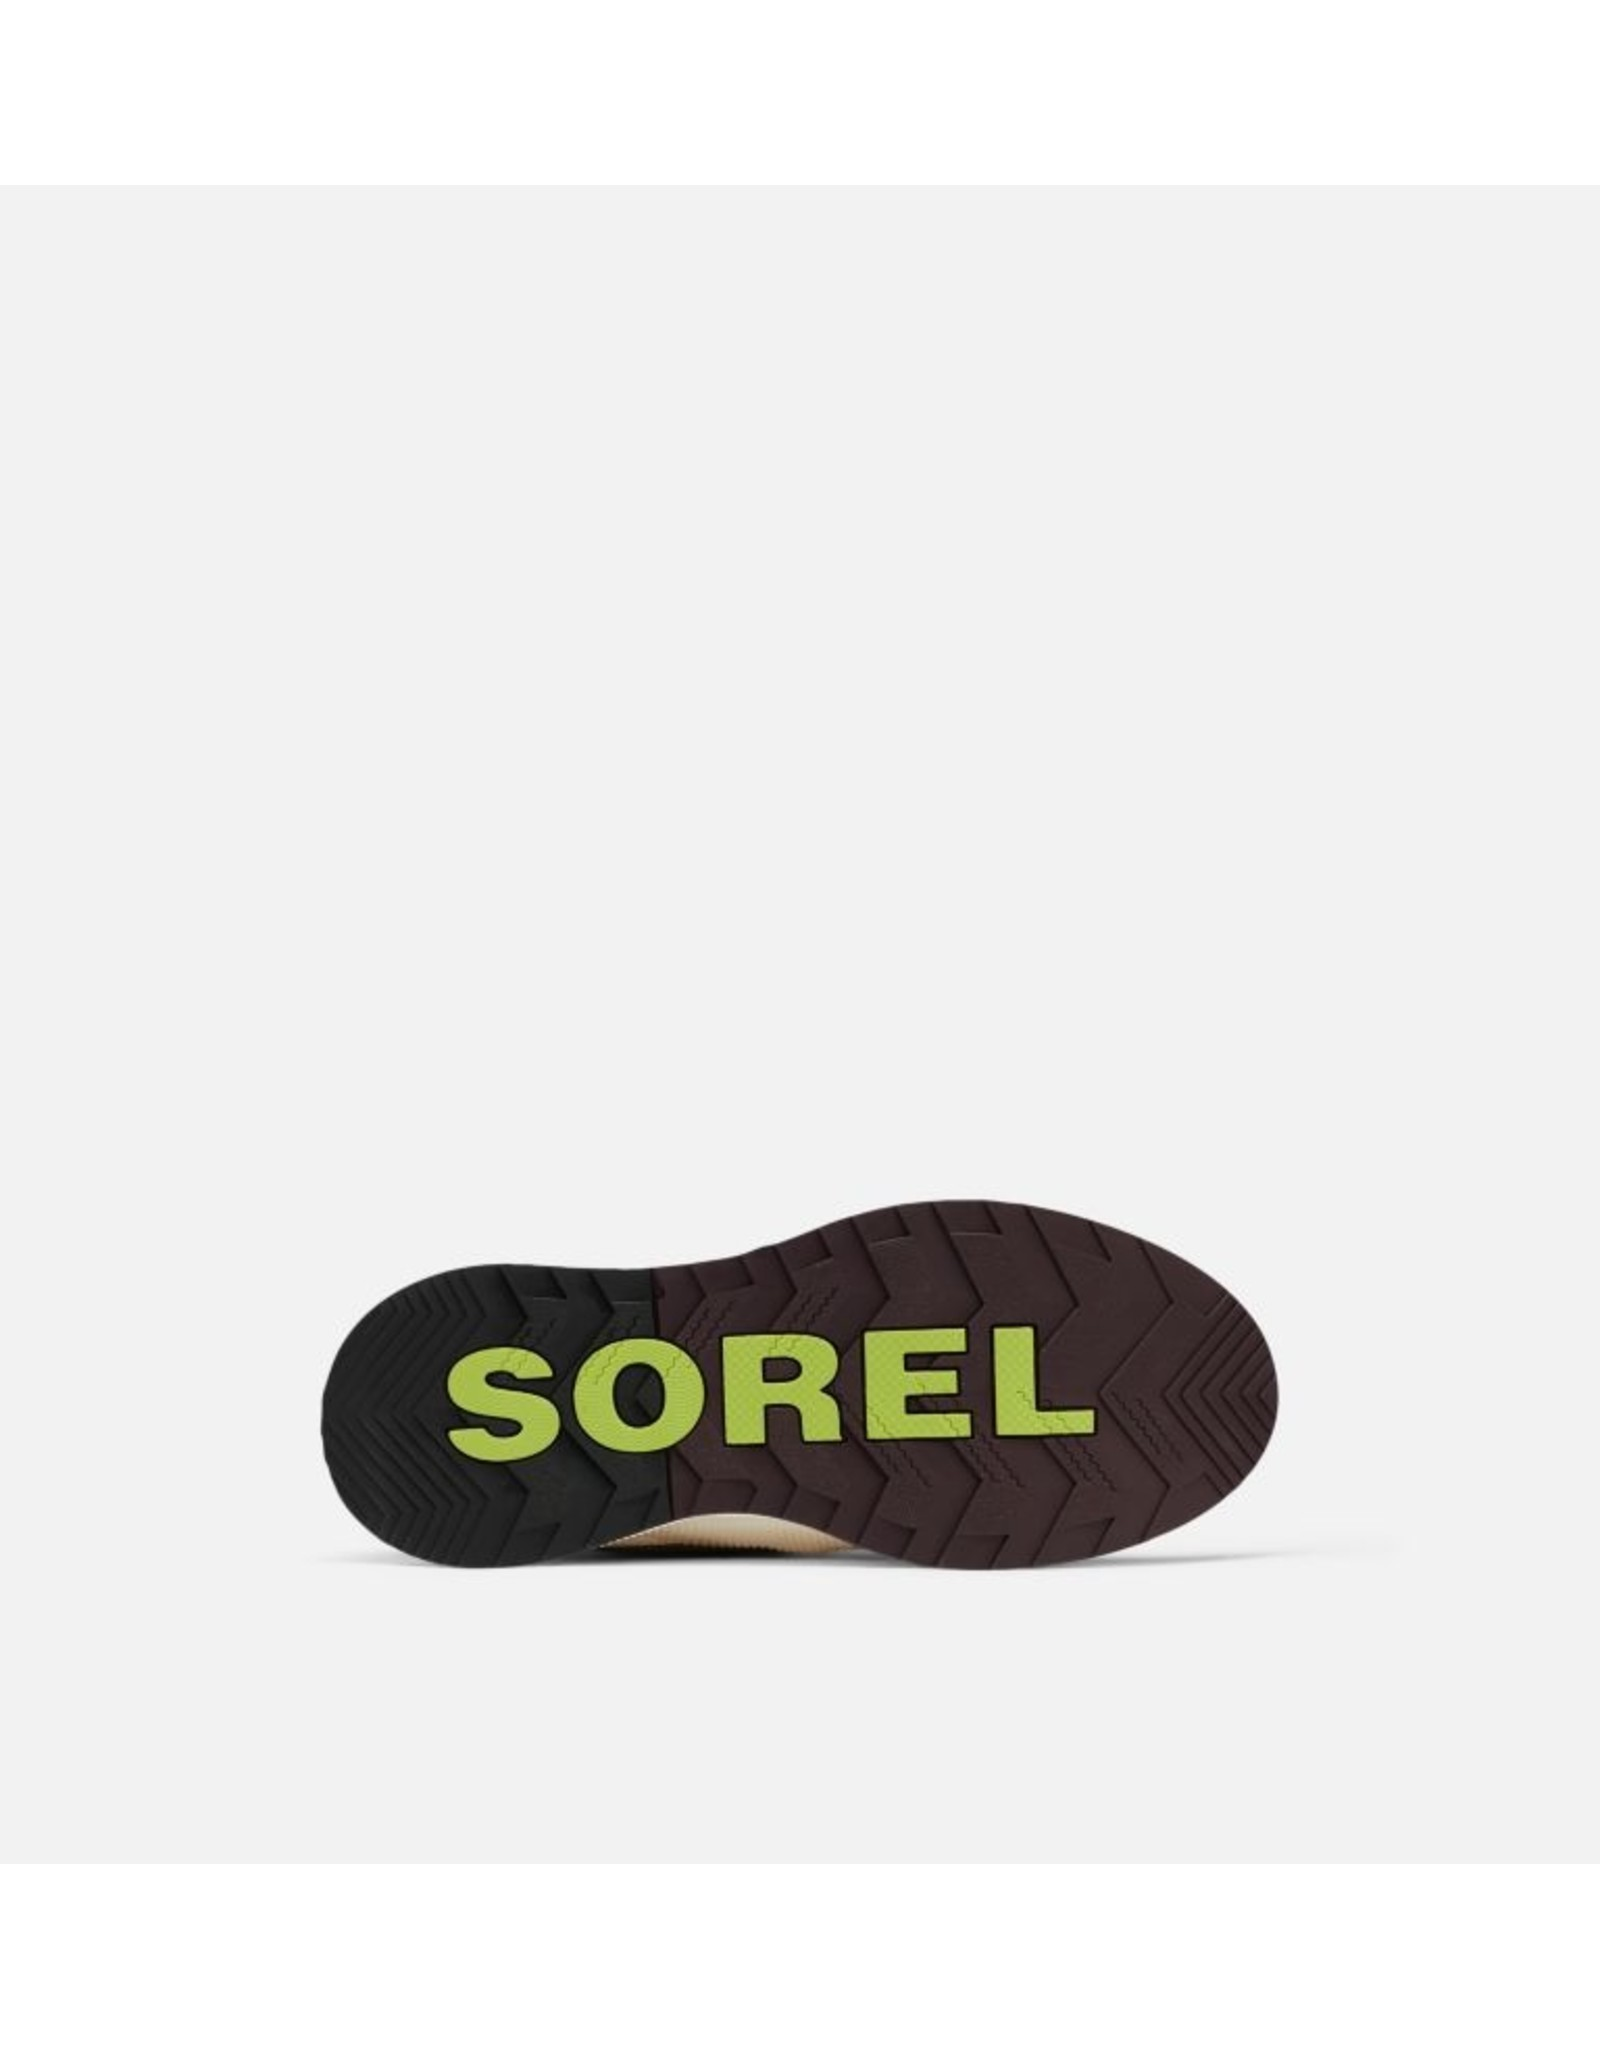 SOREL WOMEN'S OUT N ABOUT III CLASSIC DUCK BOOT-OMEGA TAUPE, BLACK